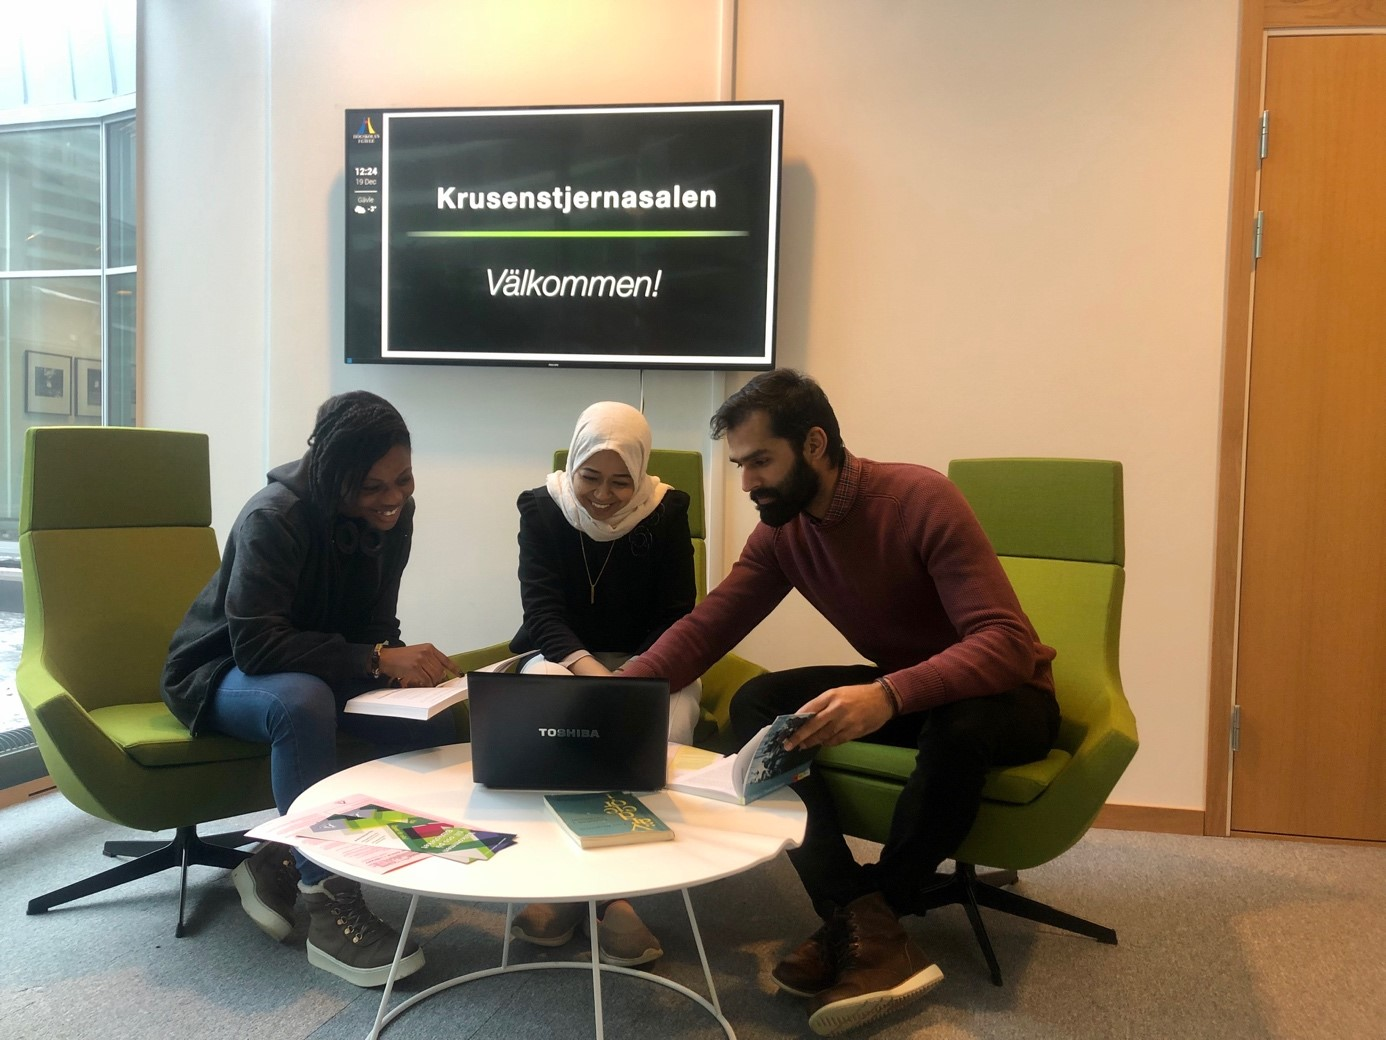 Internationella studenter i Krusenstjernasalen